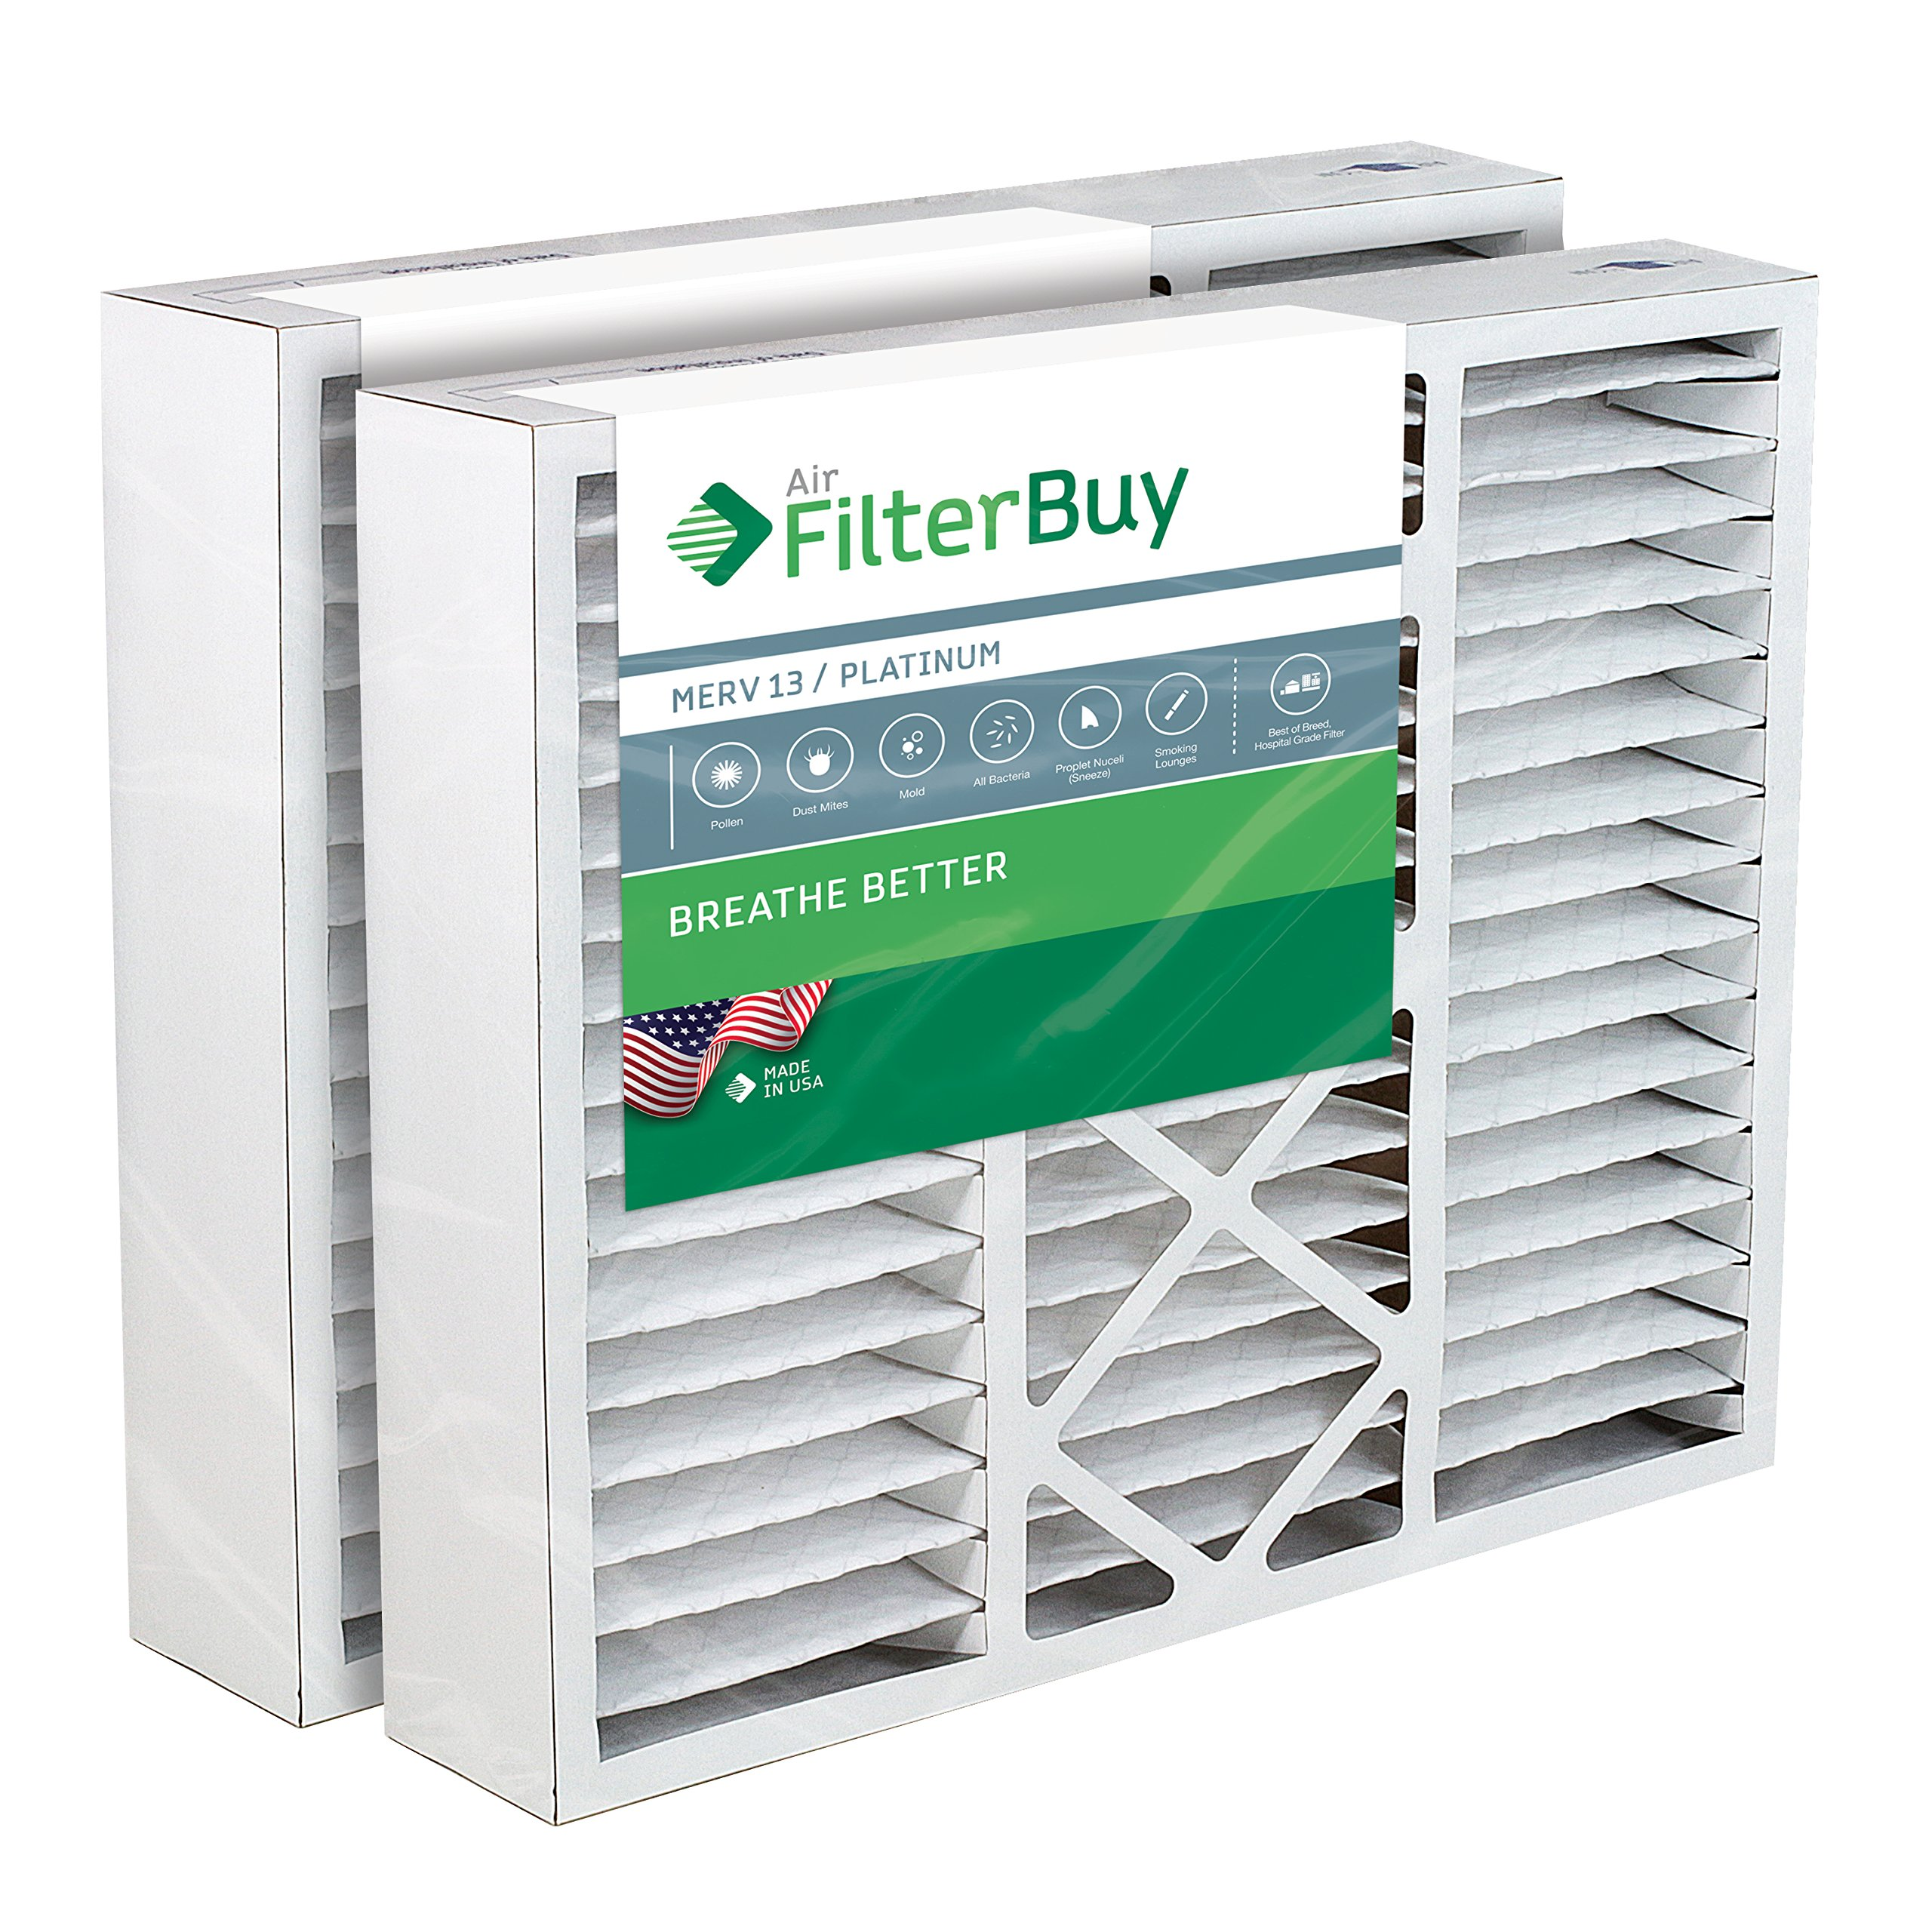 FilterBuy 20x25x5 Honeywell FC100A1037 Compatible Pleated AC Furnace Air Filters (MERV 13, AFB Platinum). Replaces Honeywell 203720, FC35A1027, FC100A1037, FC200E1037, Carrier FILXXCAR-0020. 2 Pack. by FilterBuy